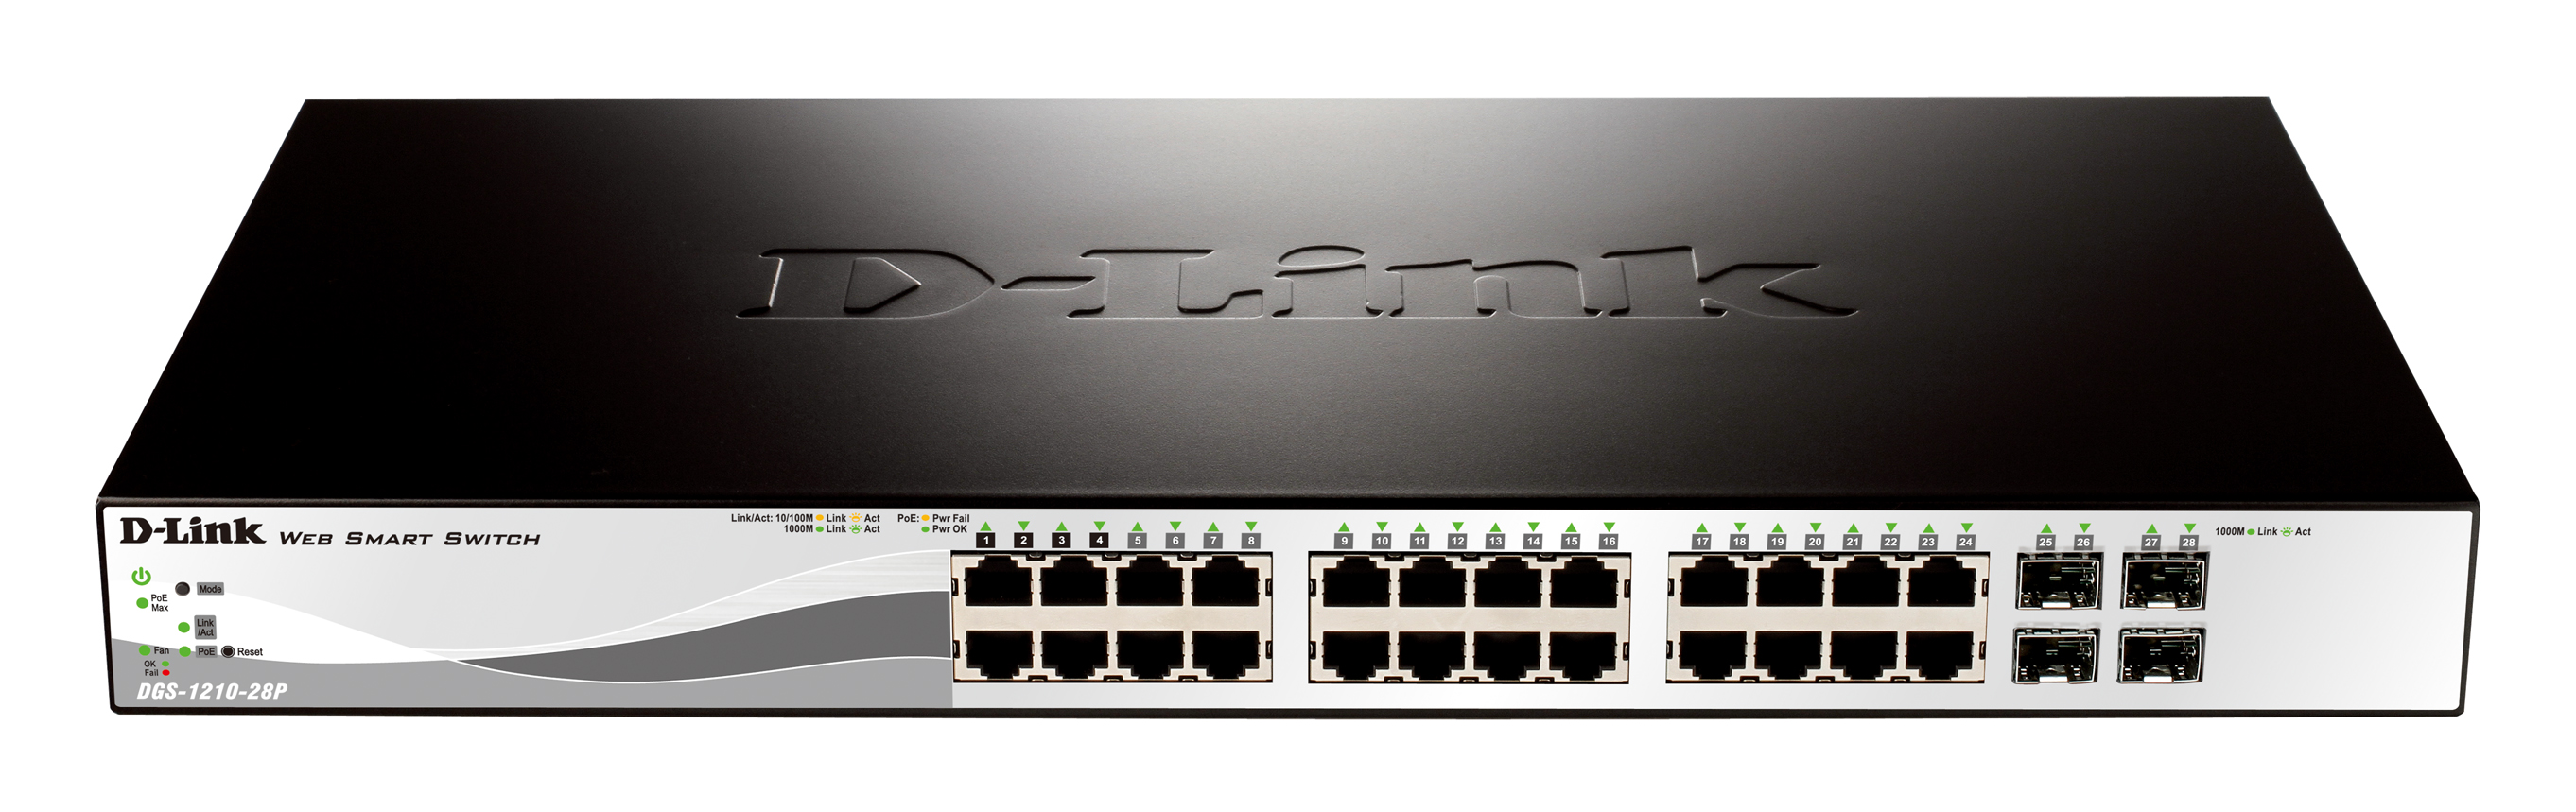 24-Port Gigabit<br>PoE WebSmart Switch